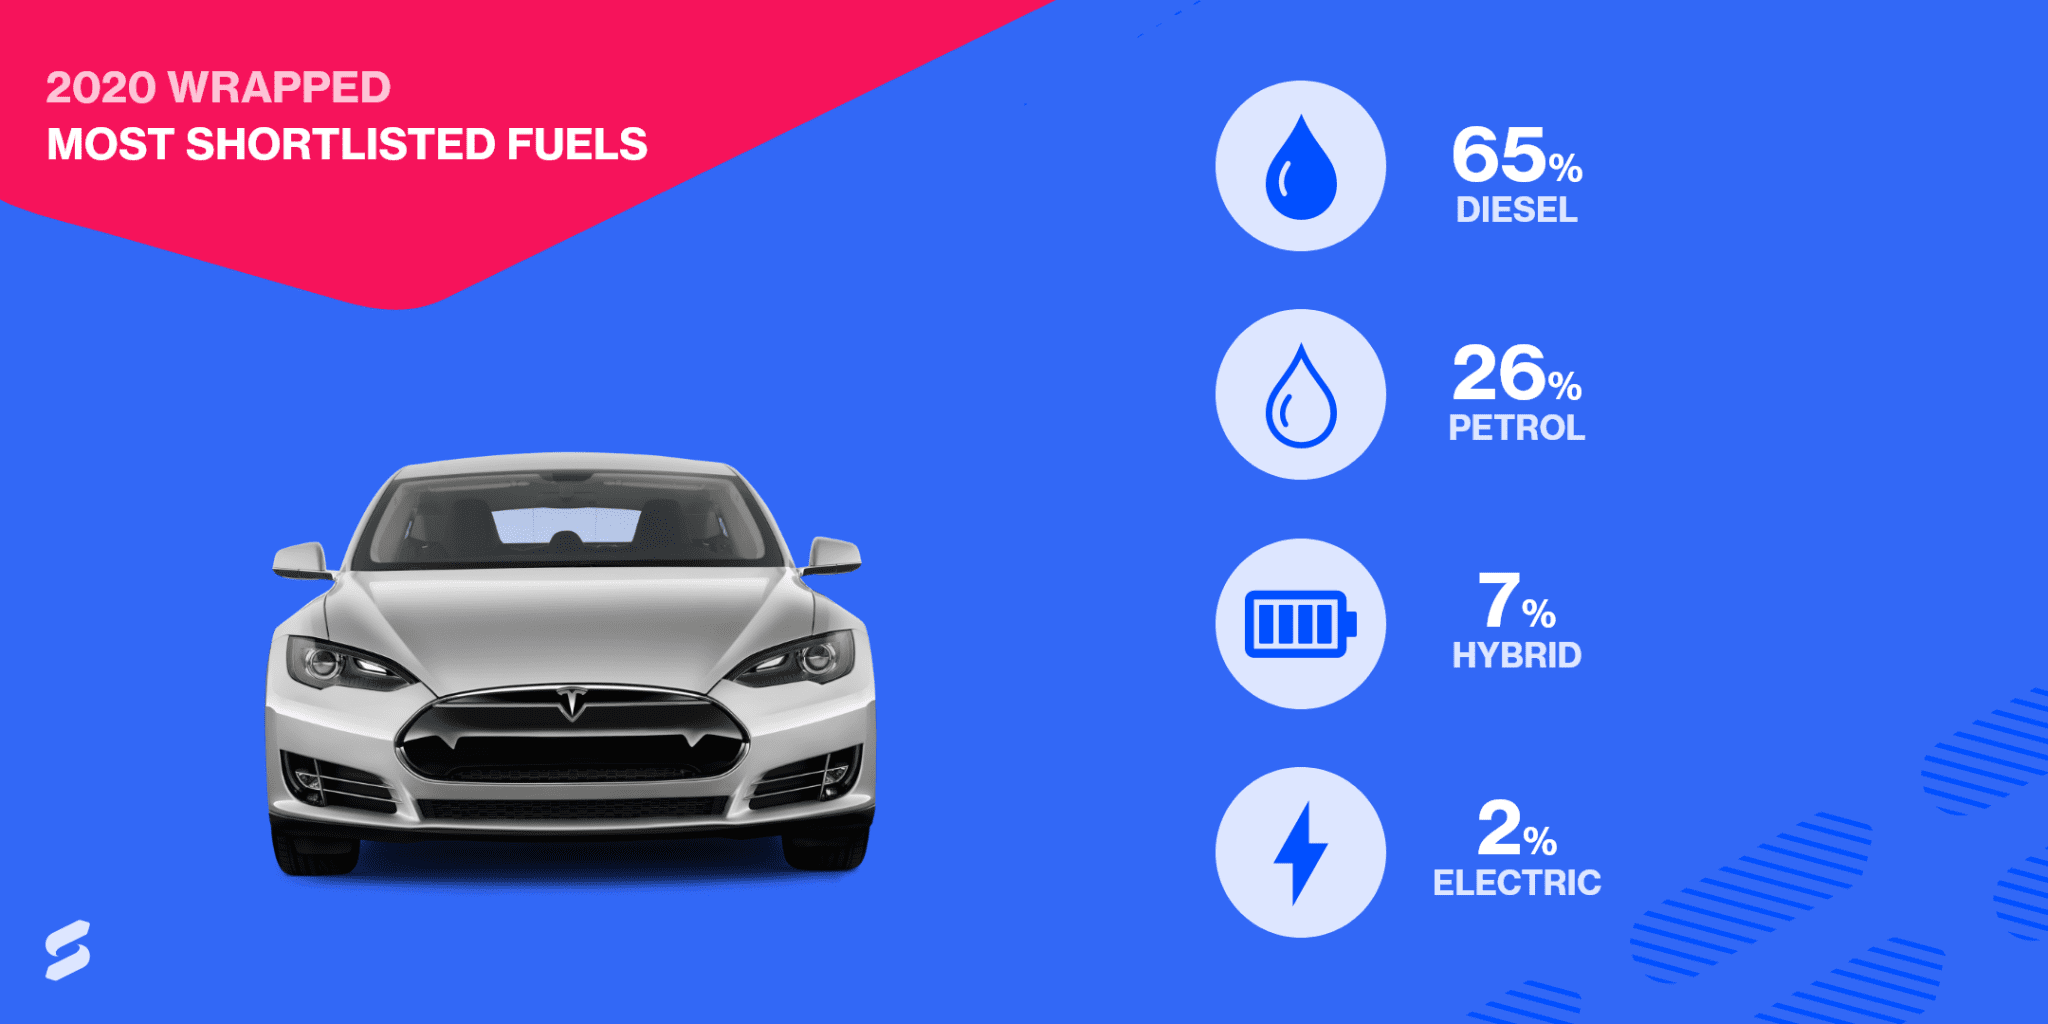 Most shortlisted fuels